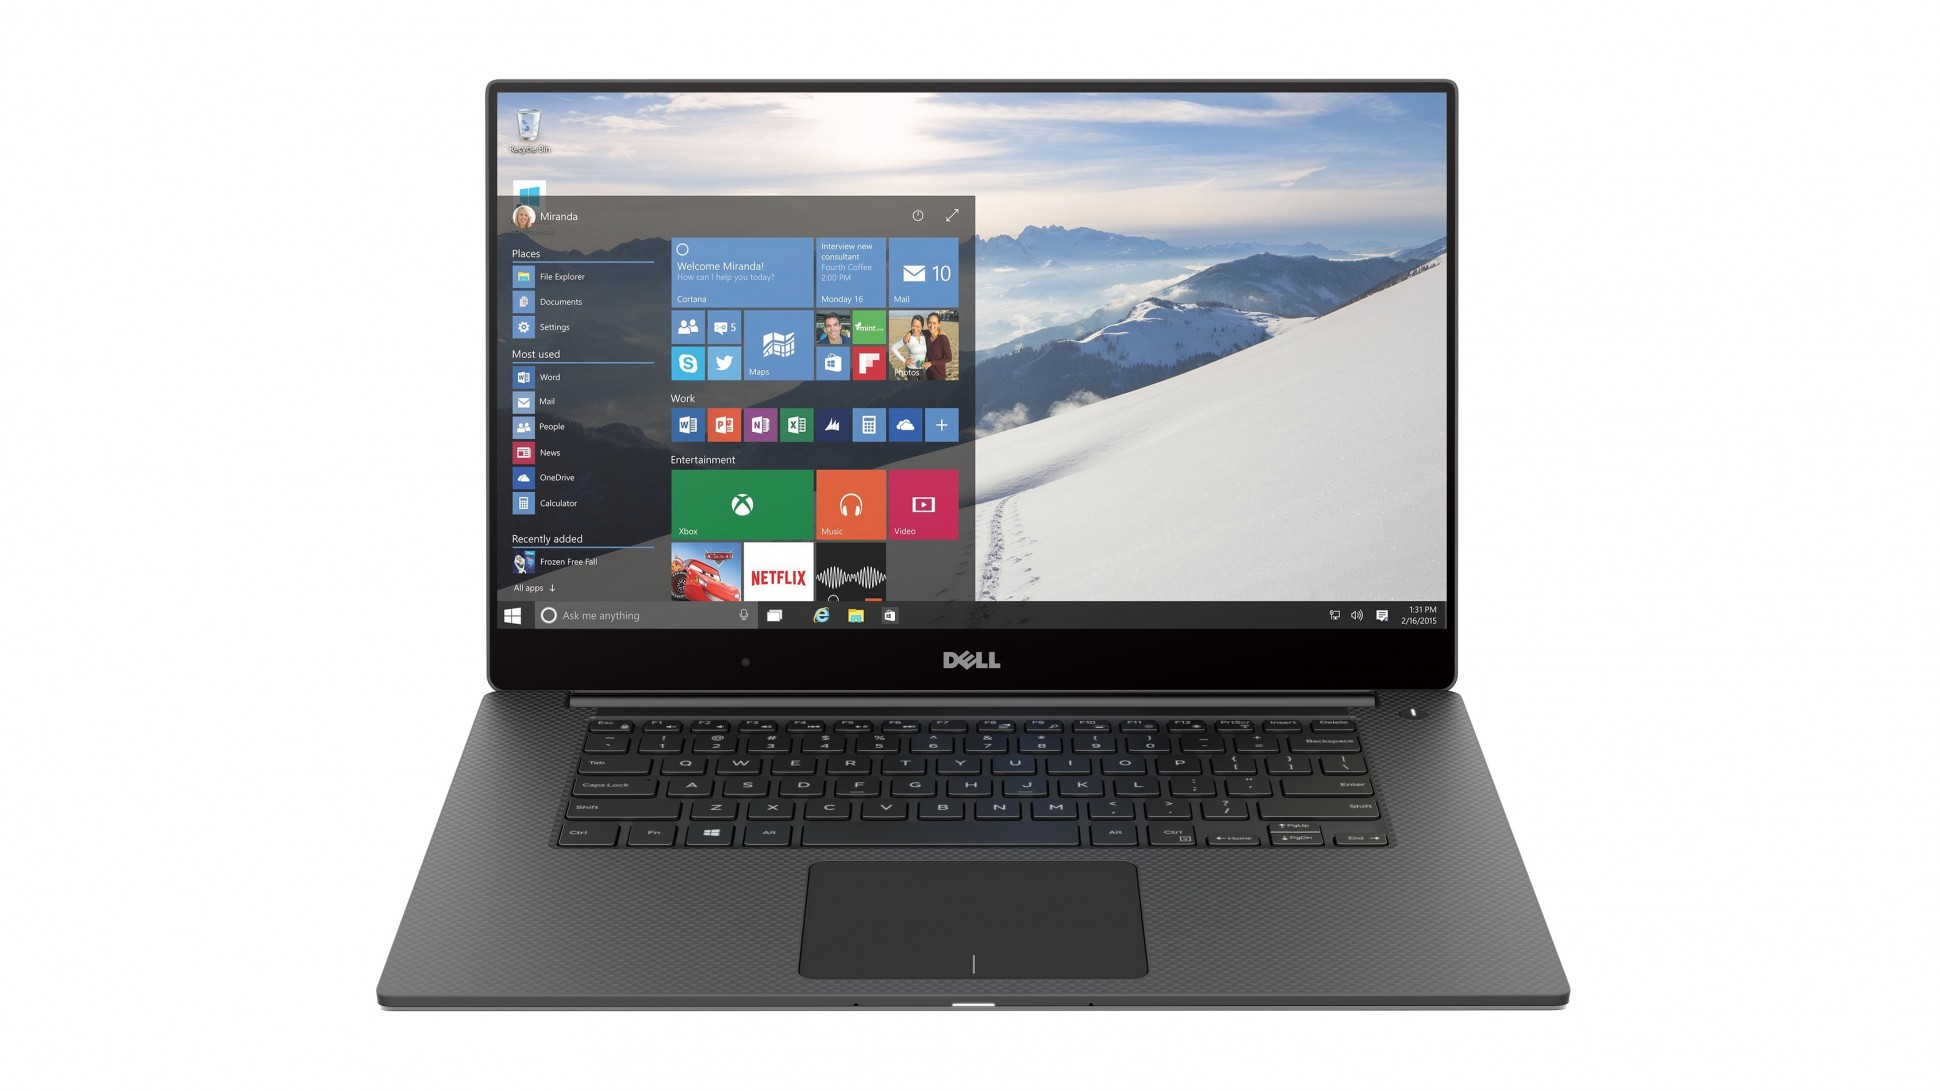 Dell inicia venda de equipamentos com Windows 10 no Brasil